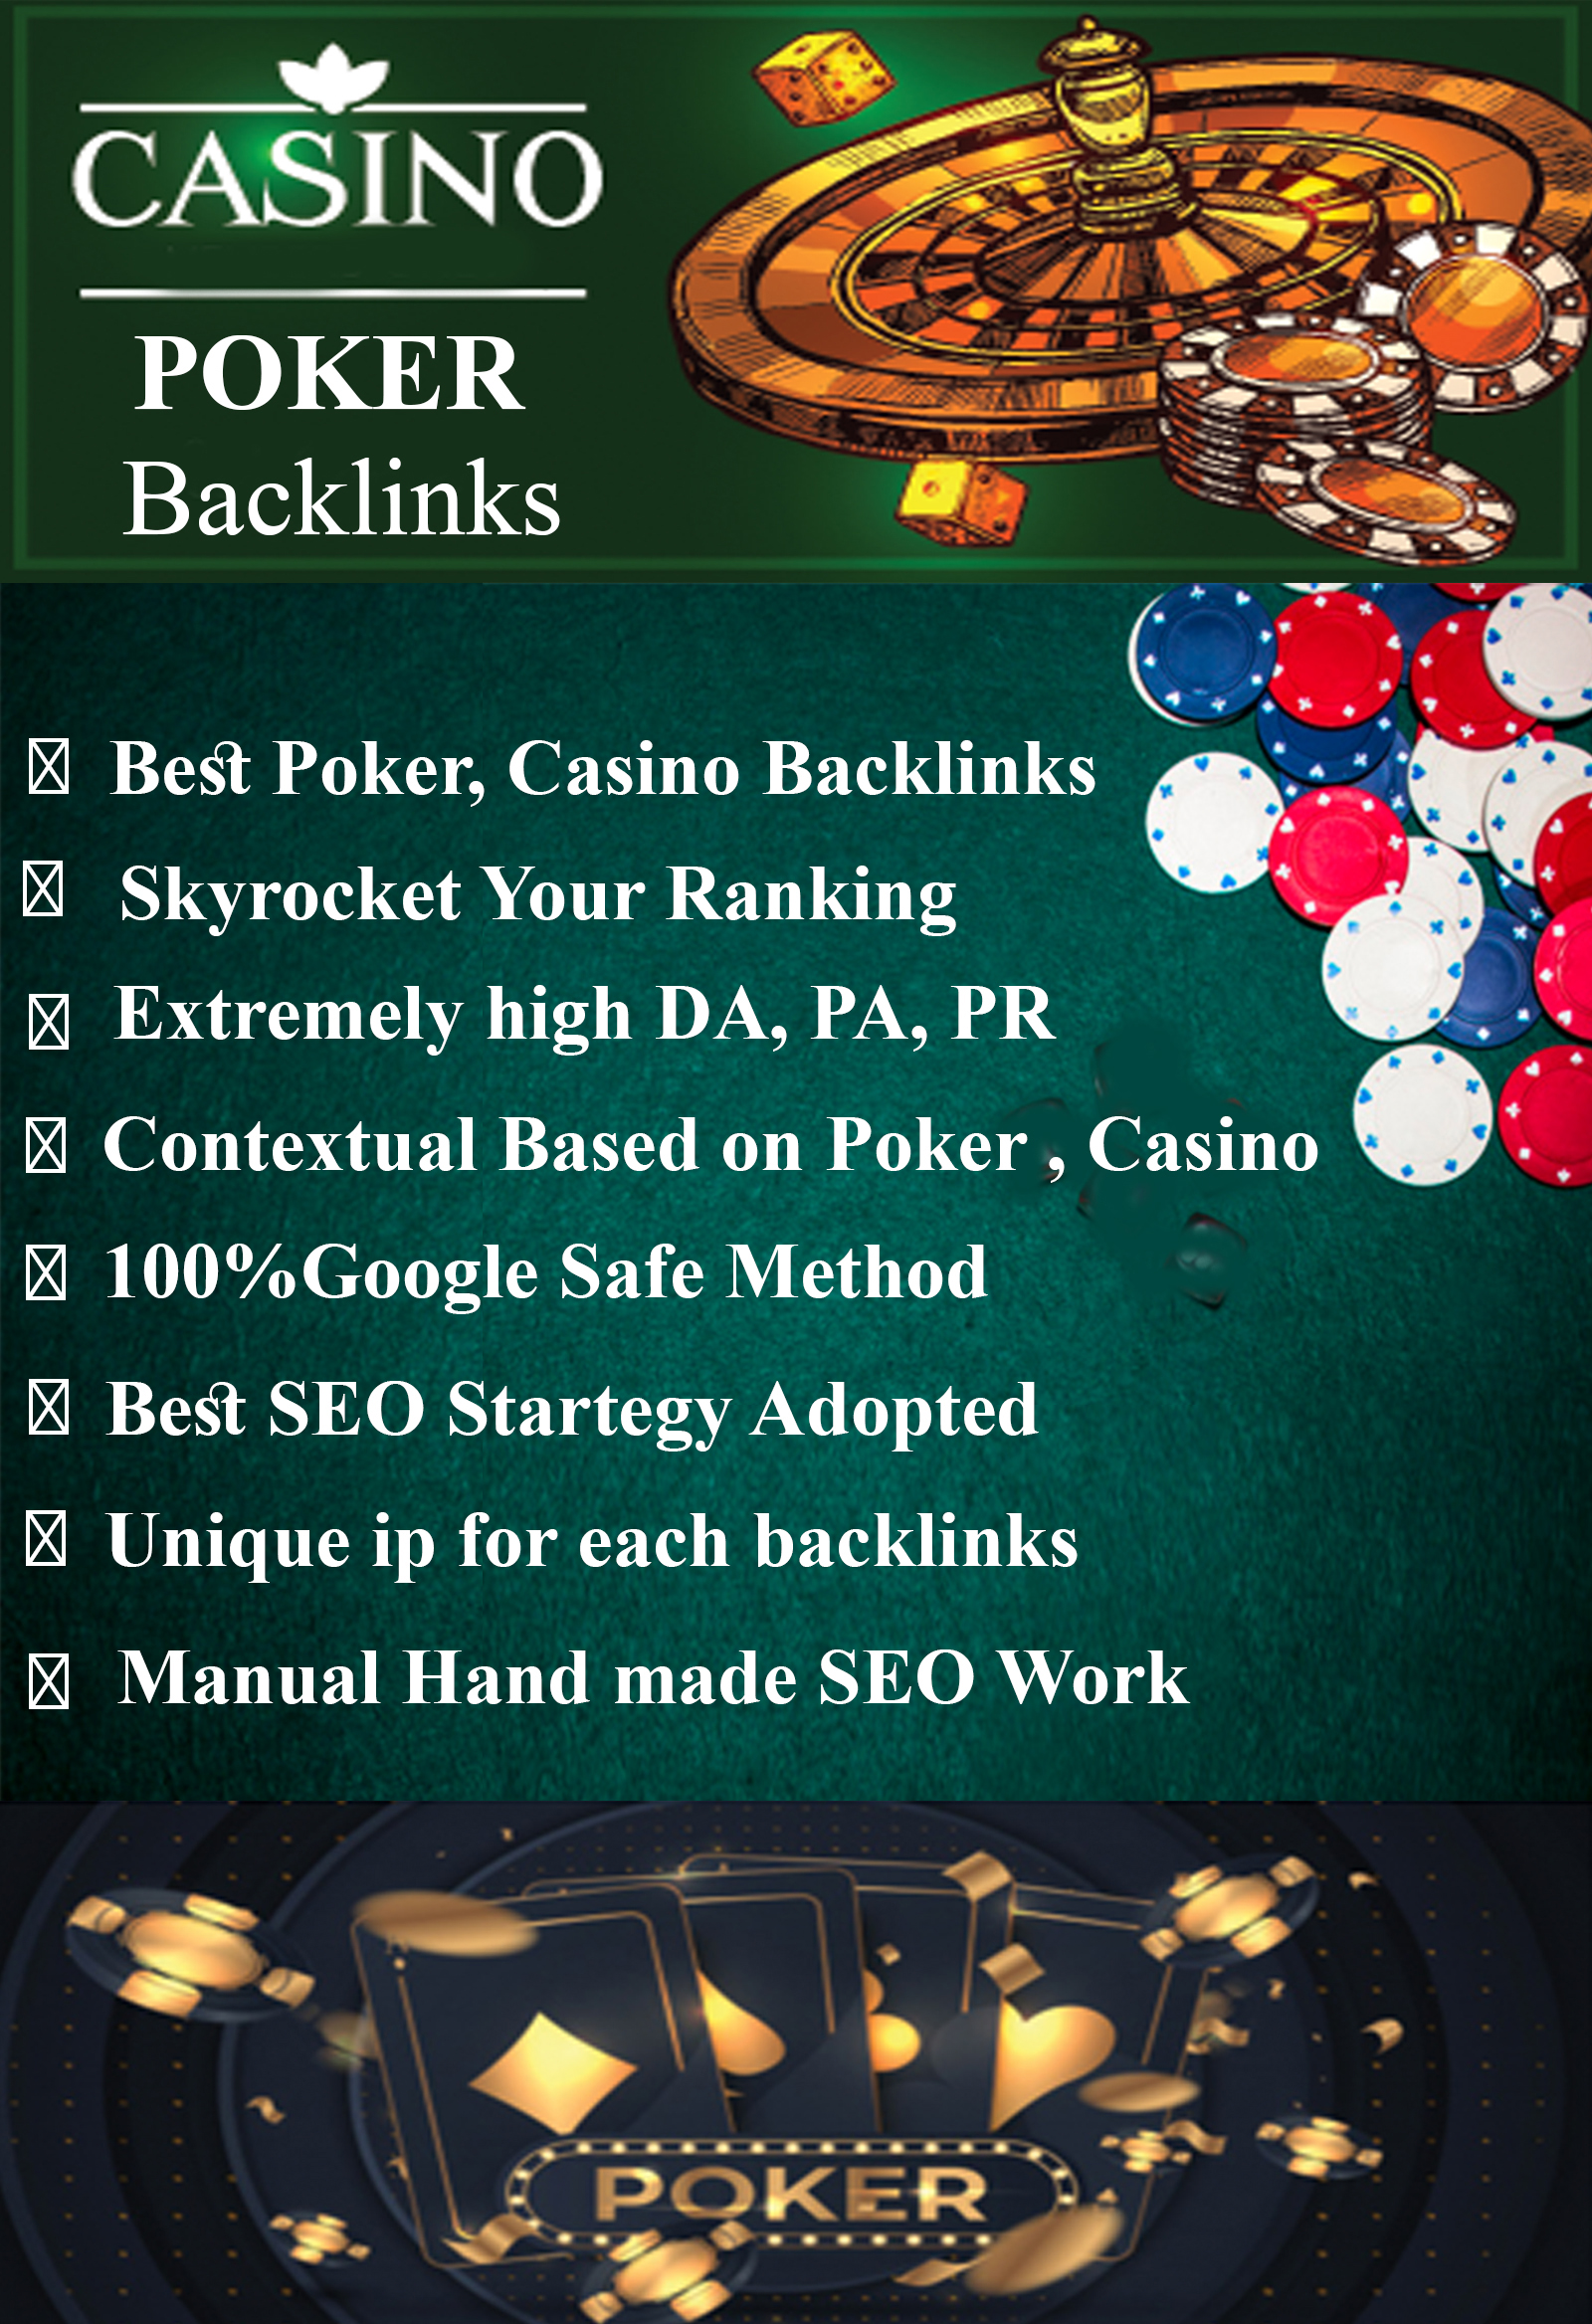 2850 poker, casino and gambling pbns backlinks